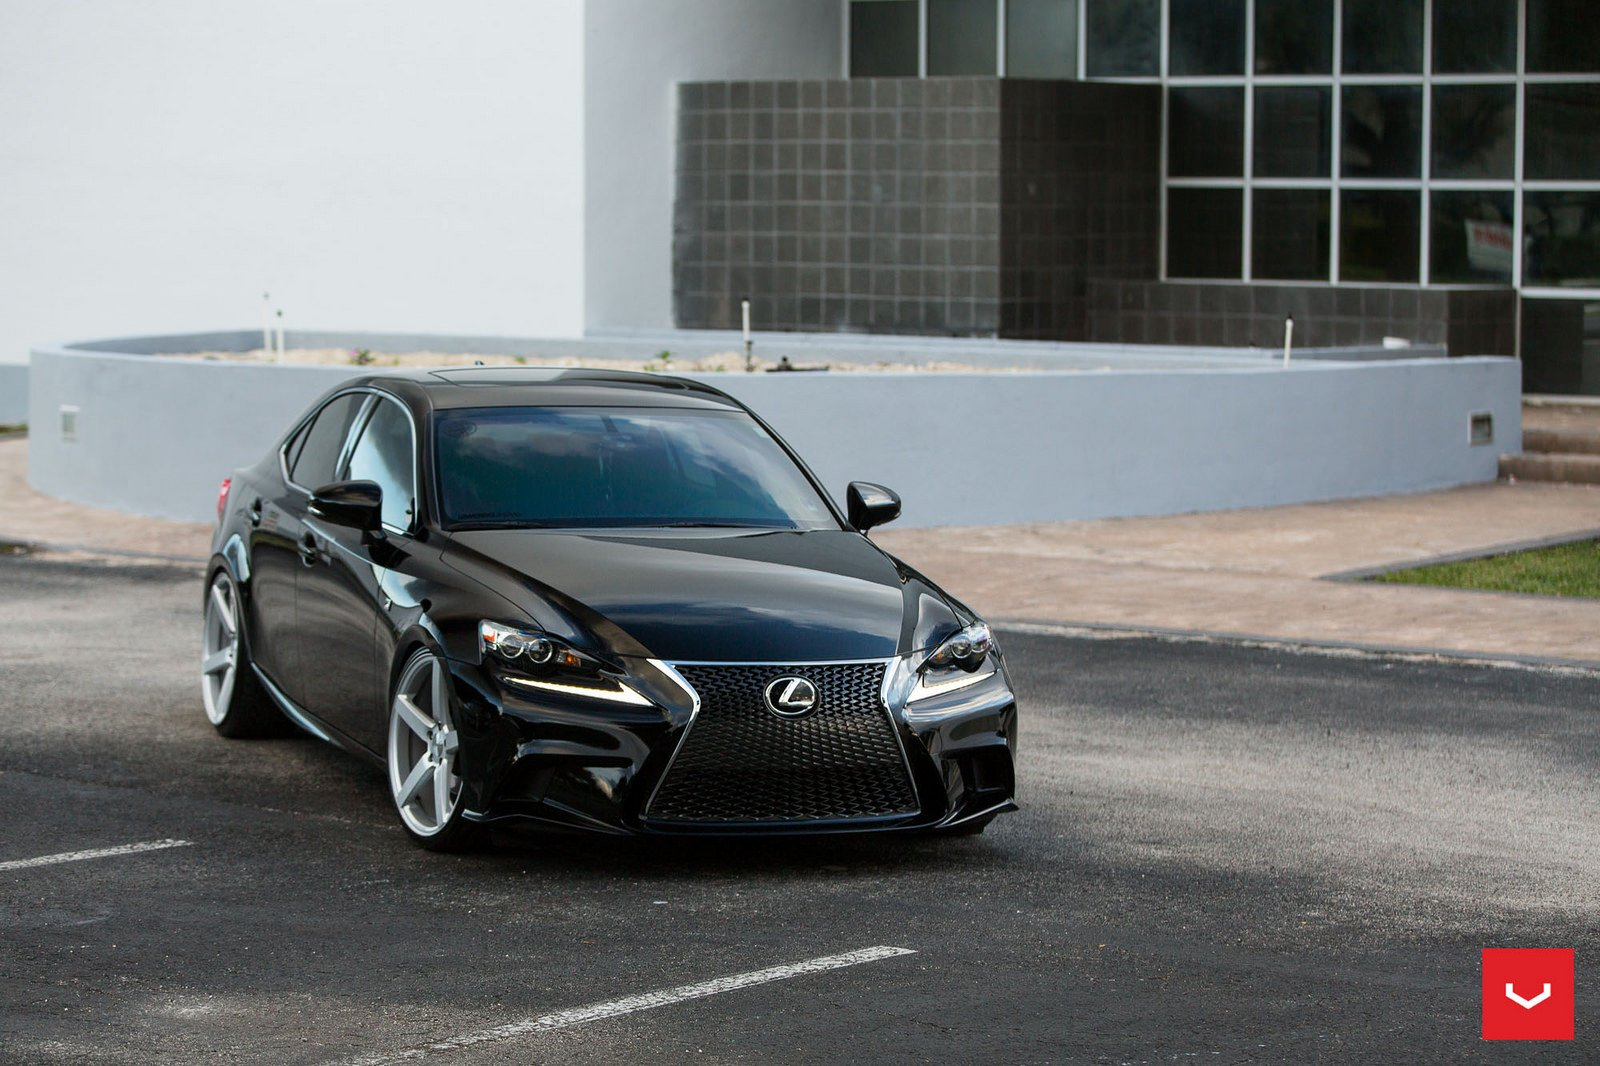 Lexus Is 250 F Sport Black Vossen Wheels Cars Wallpaper HD Wallpapers Download free images and photos [musssic.tk]